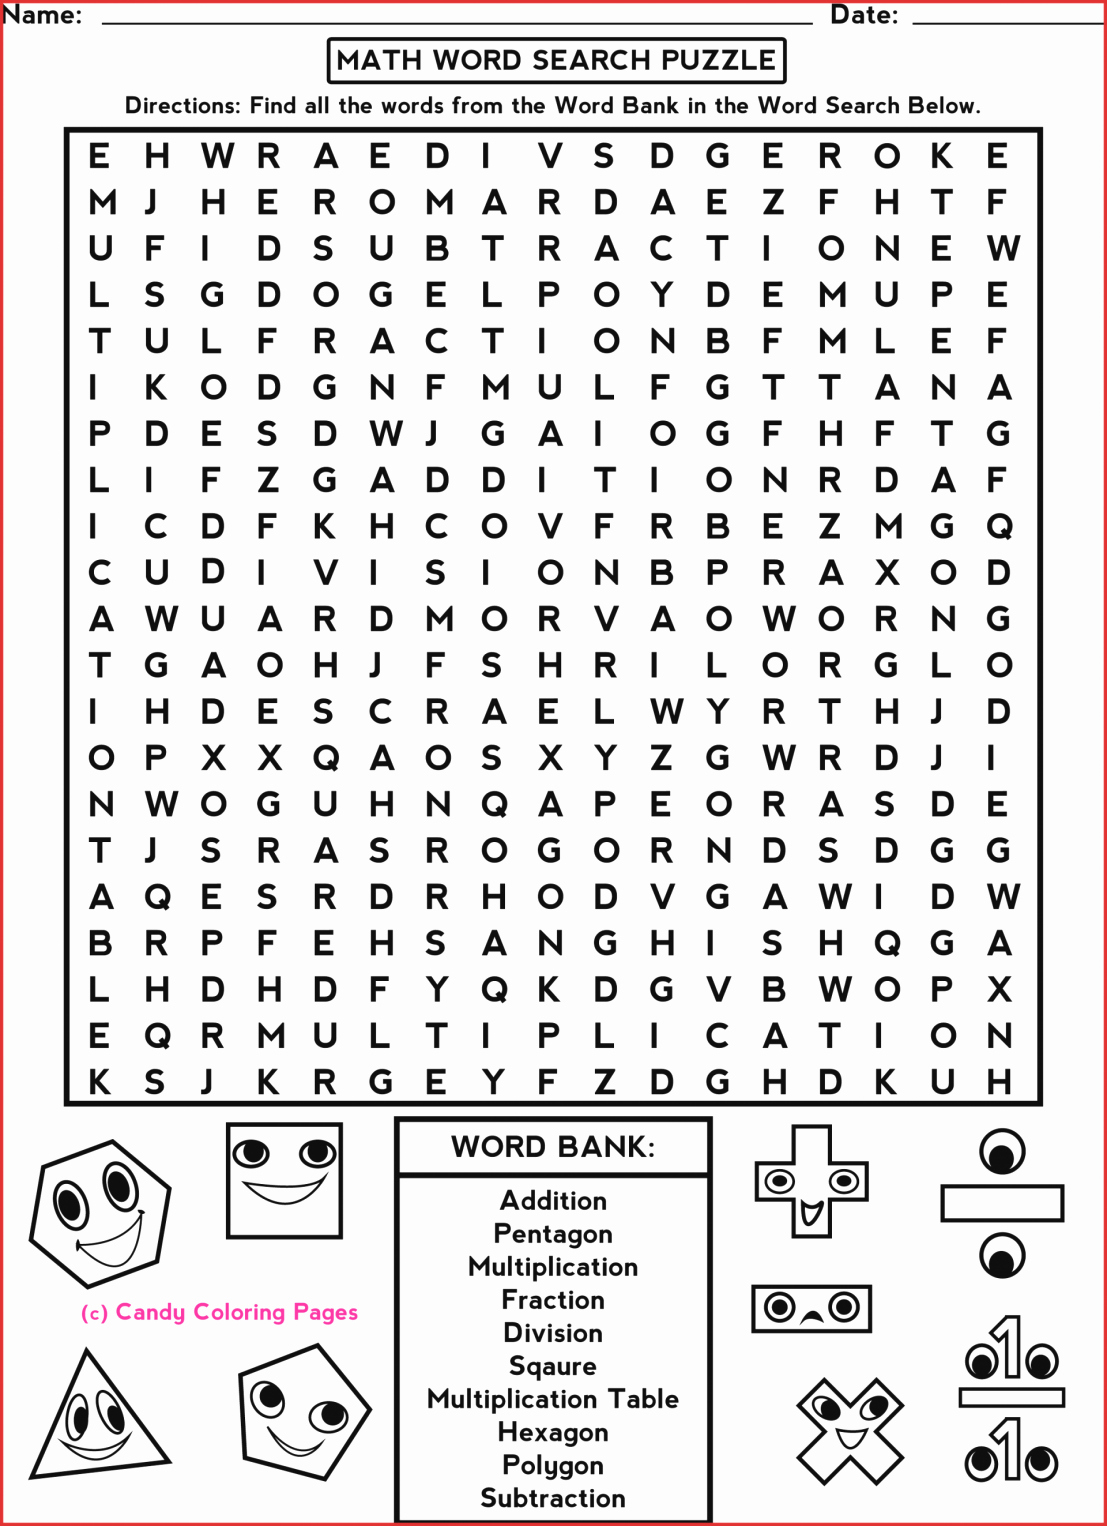 7Th Grade Crossword Puzzles Fresh 7Th Grade Math Word Search - Printable Crossword Puzzles For 3Rd Graders